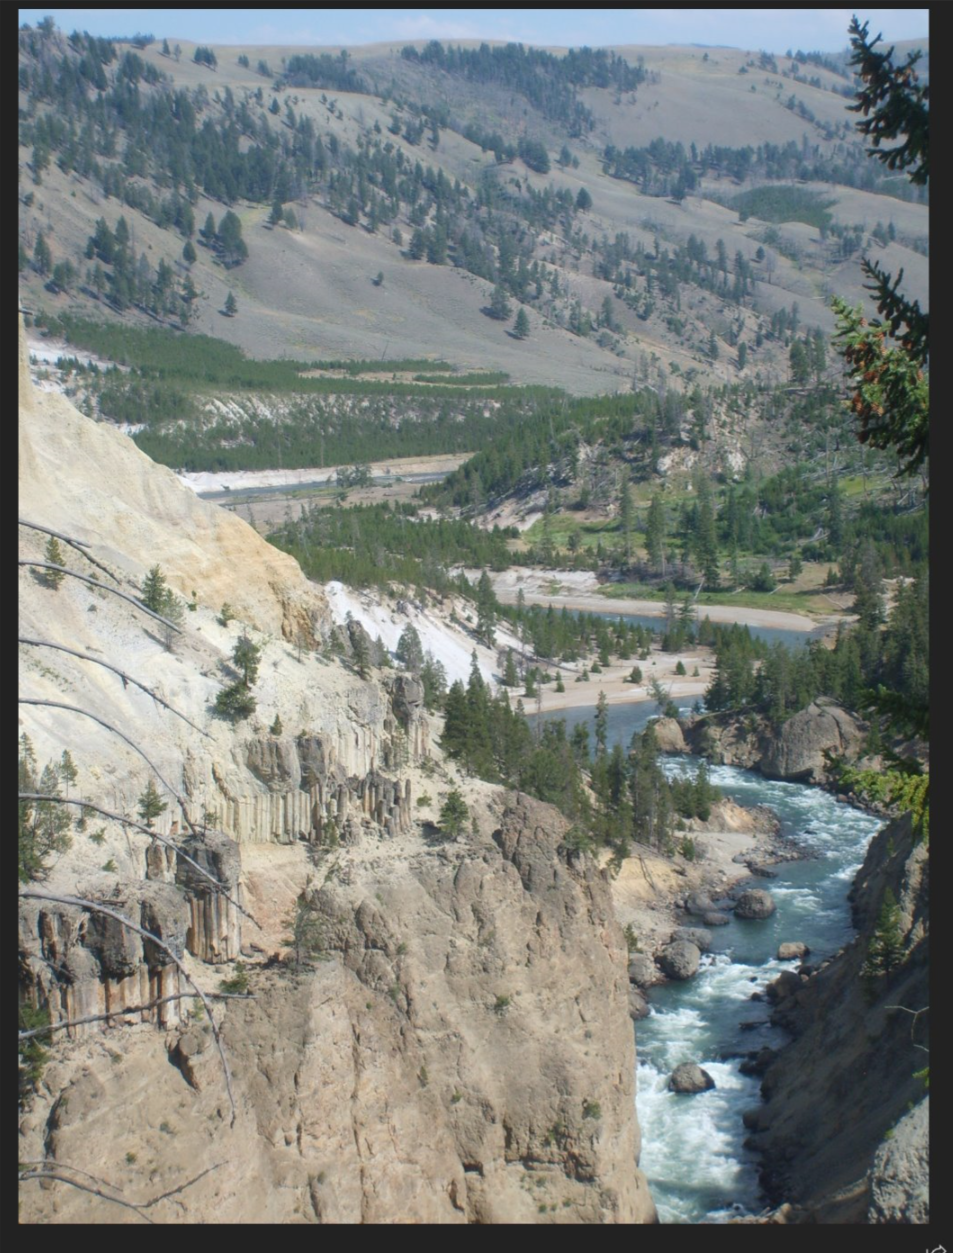 Yellowstone Mountain and River